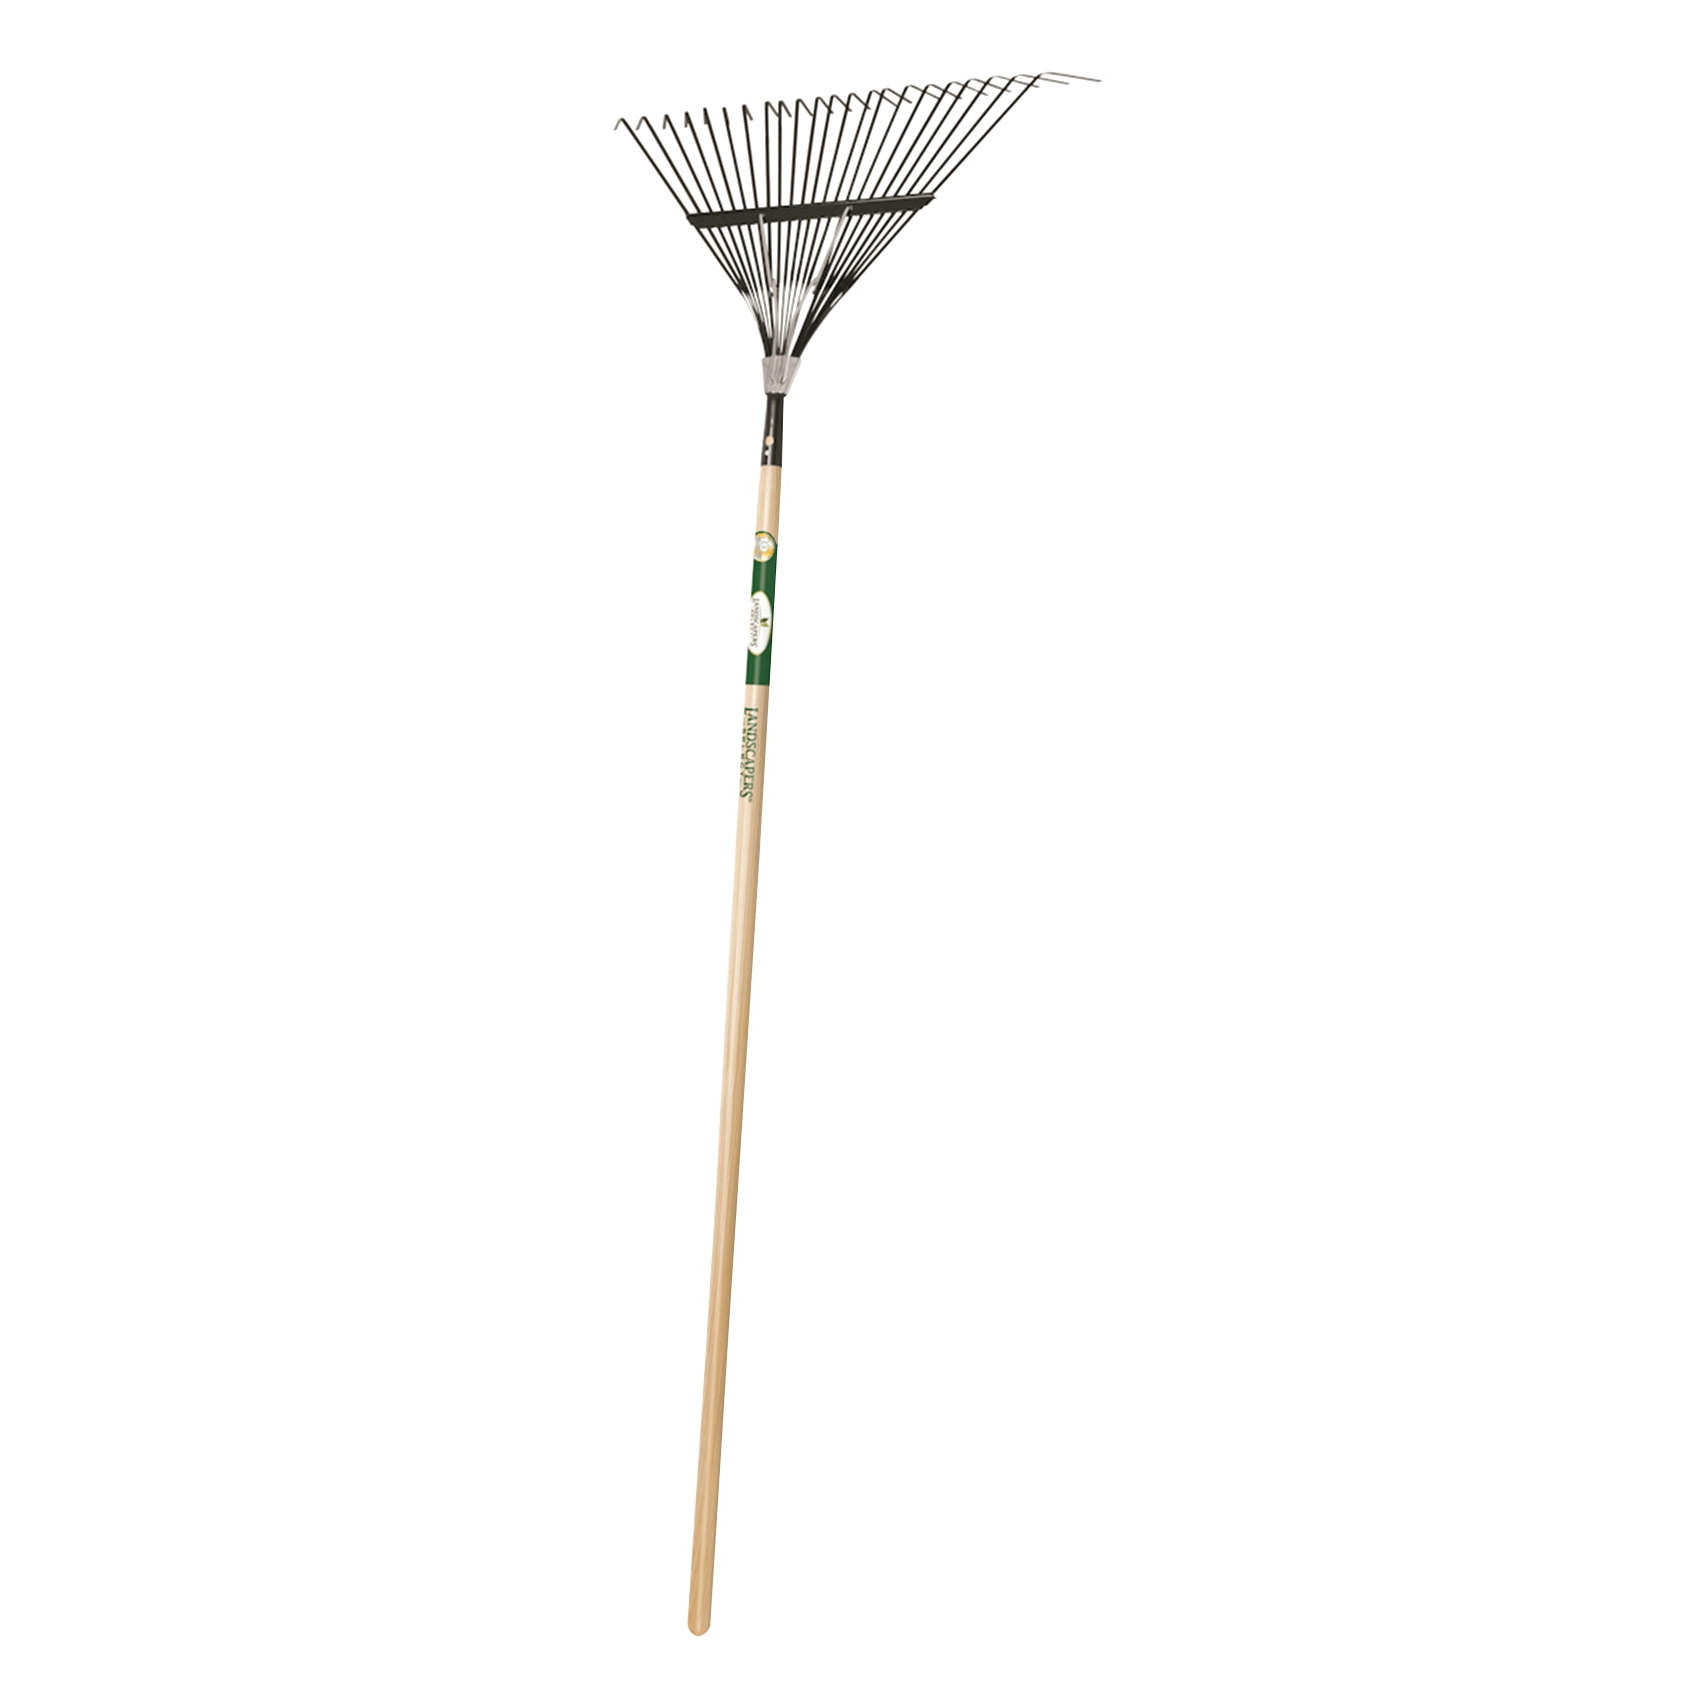 Picture of Landscapers Select 34585 Lawn/Leaf Rake, Steel Tine, 22 -Tine, Wood Handle, 54 in L Handle